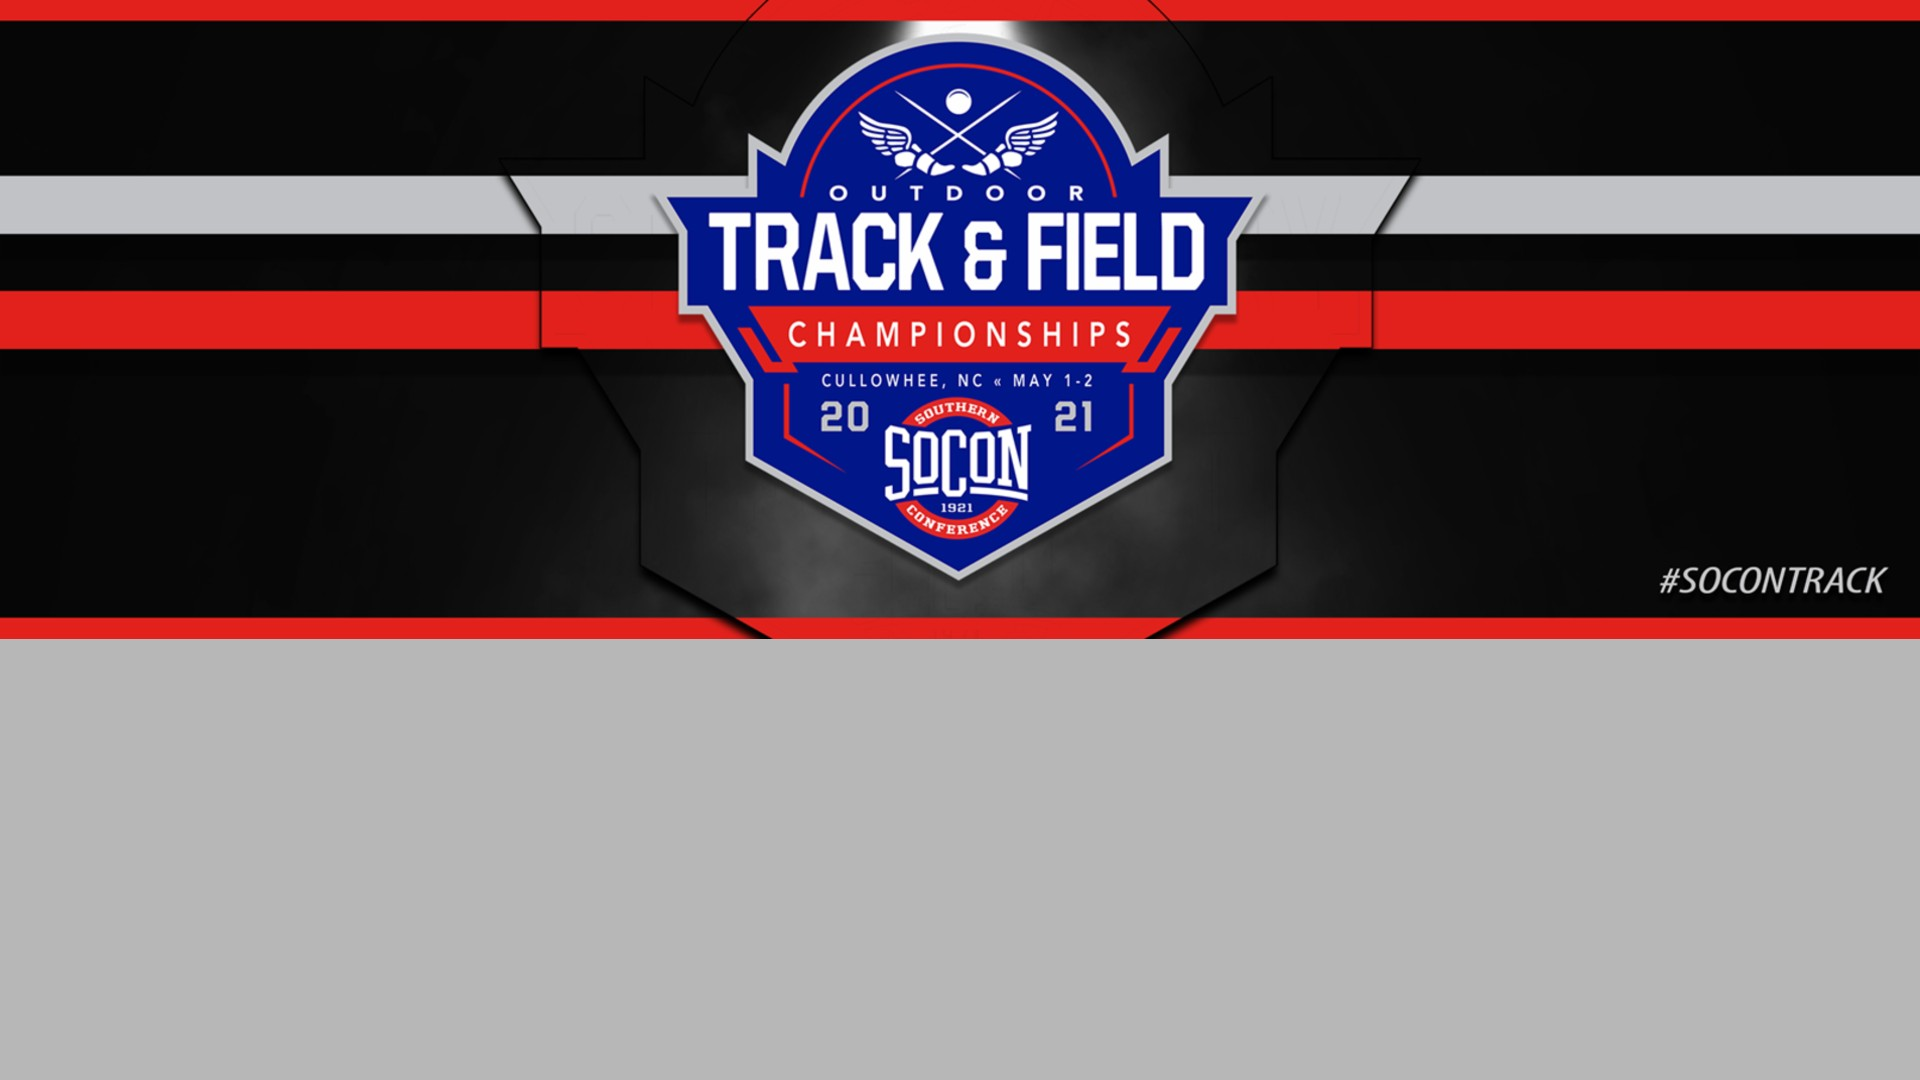 2021_Southern_Conference_Outdoor_Championships